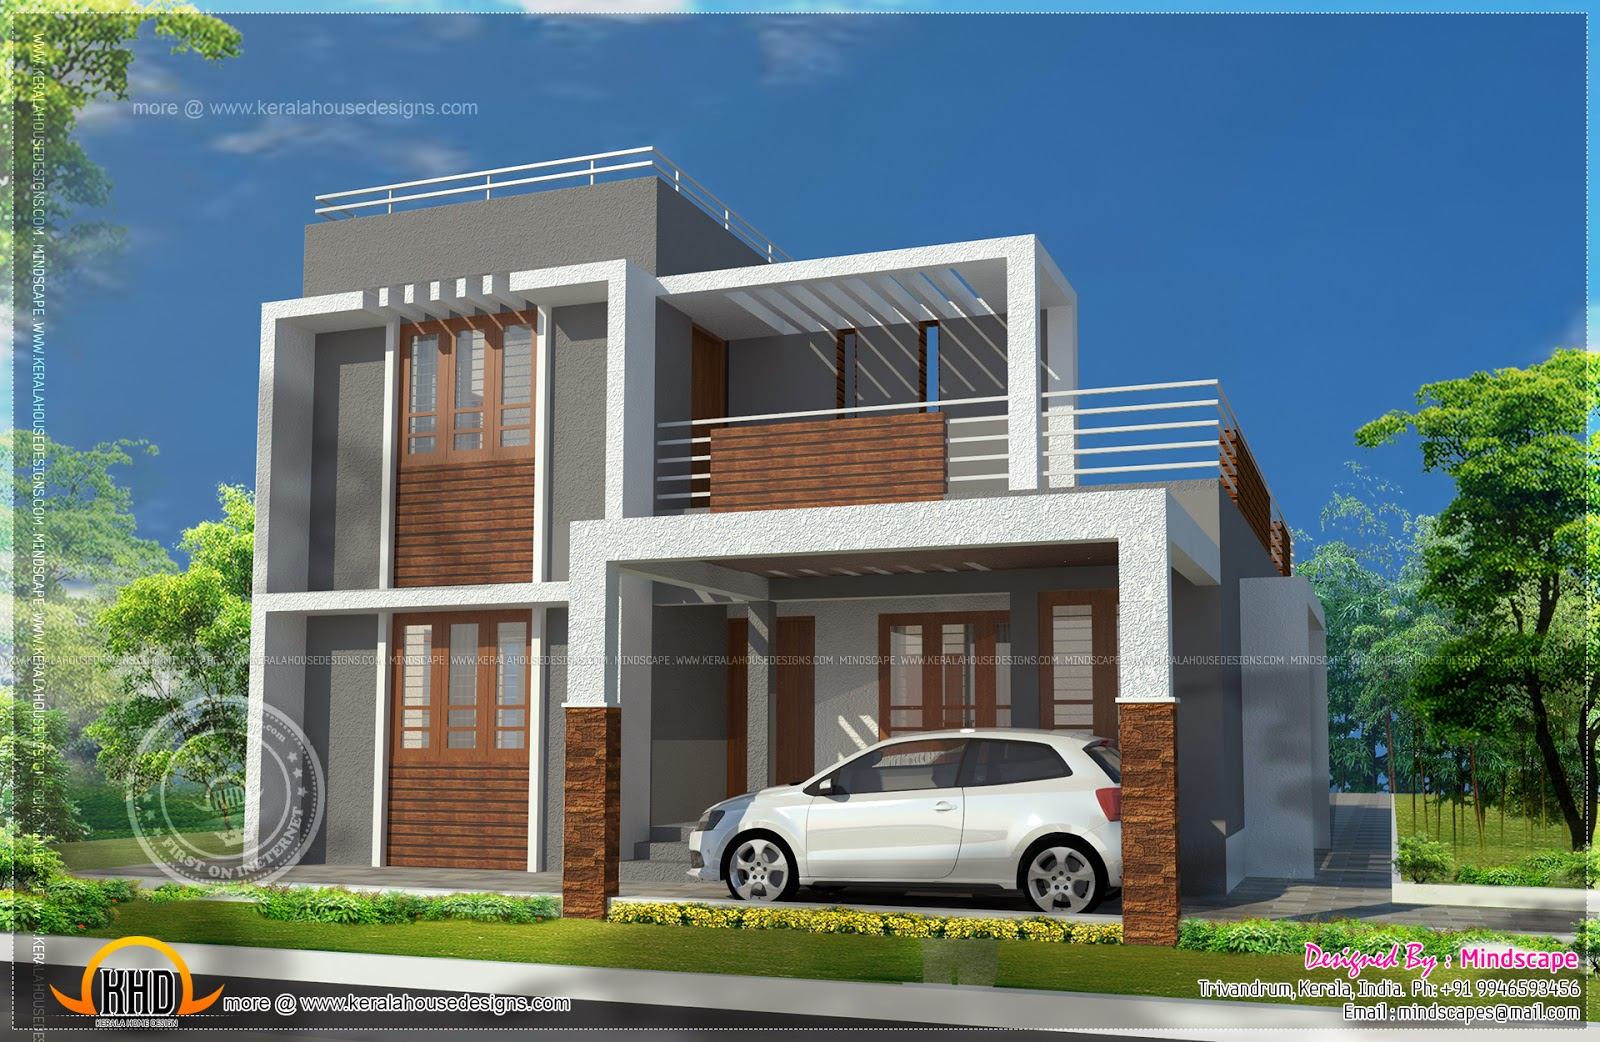 Small double storied contemporary house plan kerala home design and floor plans - Small modern house designs ...